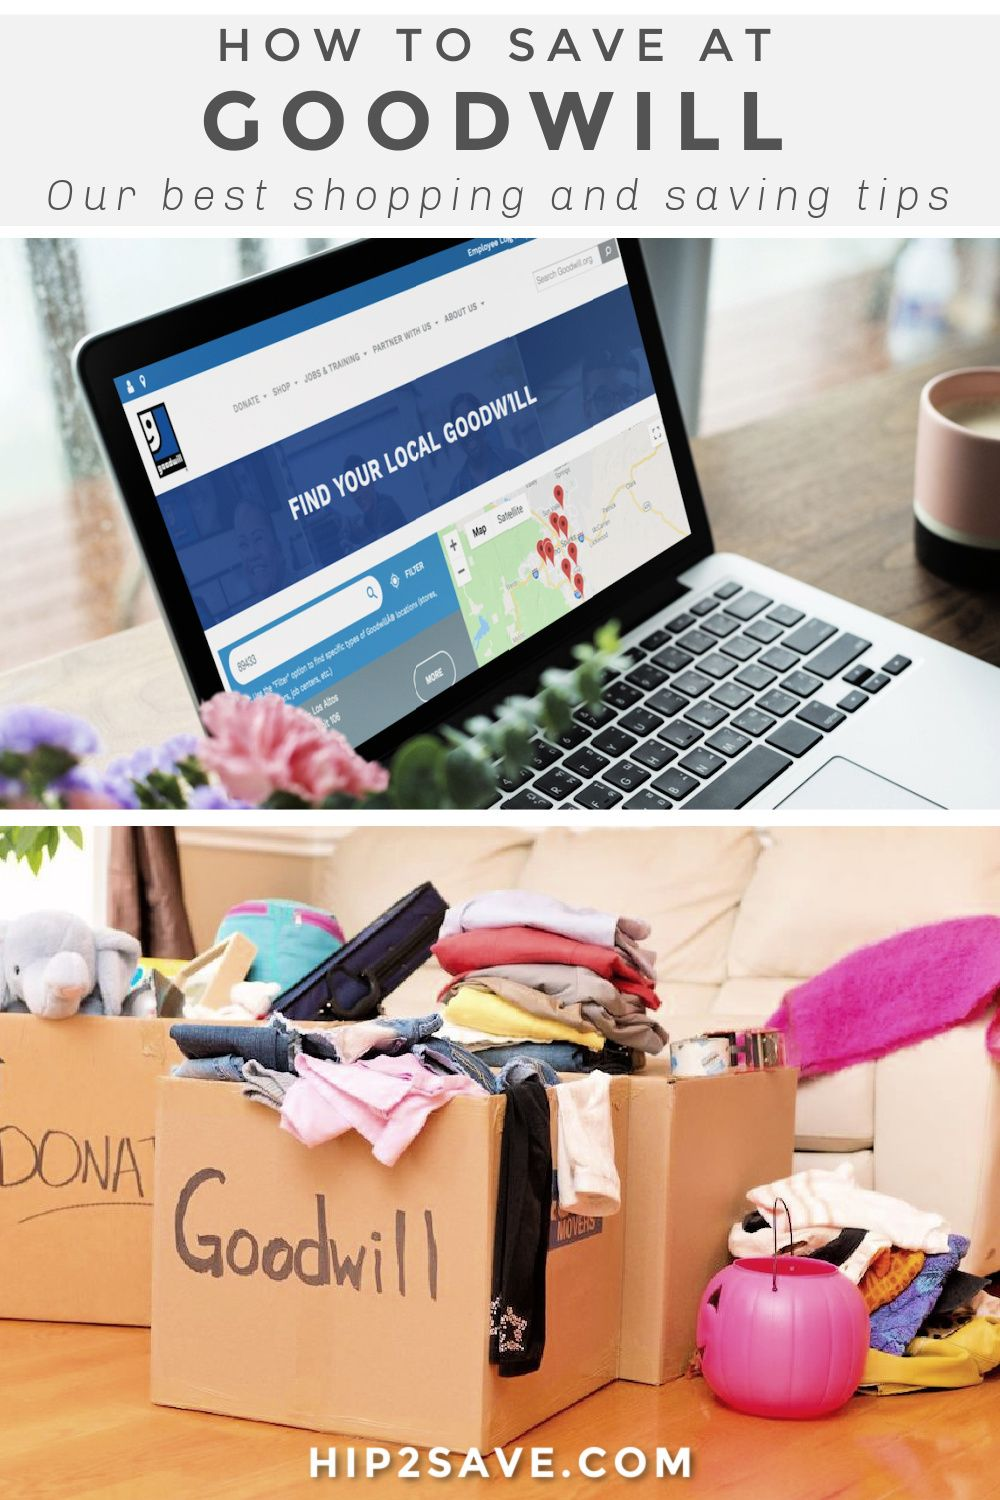 We Ve Got The Inside Scoop From An Ex Goodwill Employee On How To Save Big With Coupons So Much More At Goodwill In 2020 Thrifting Shopping Hacks Cheap Stuff To